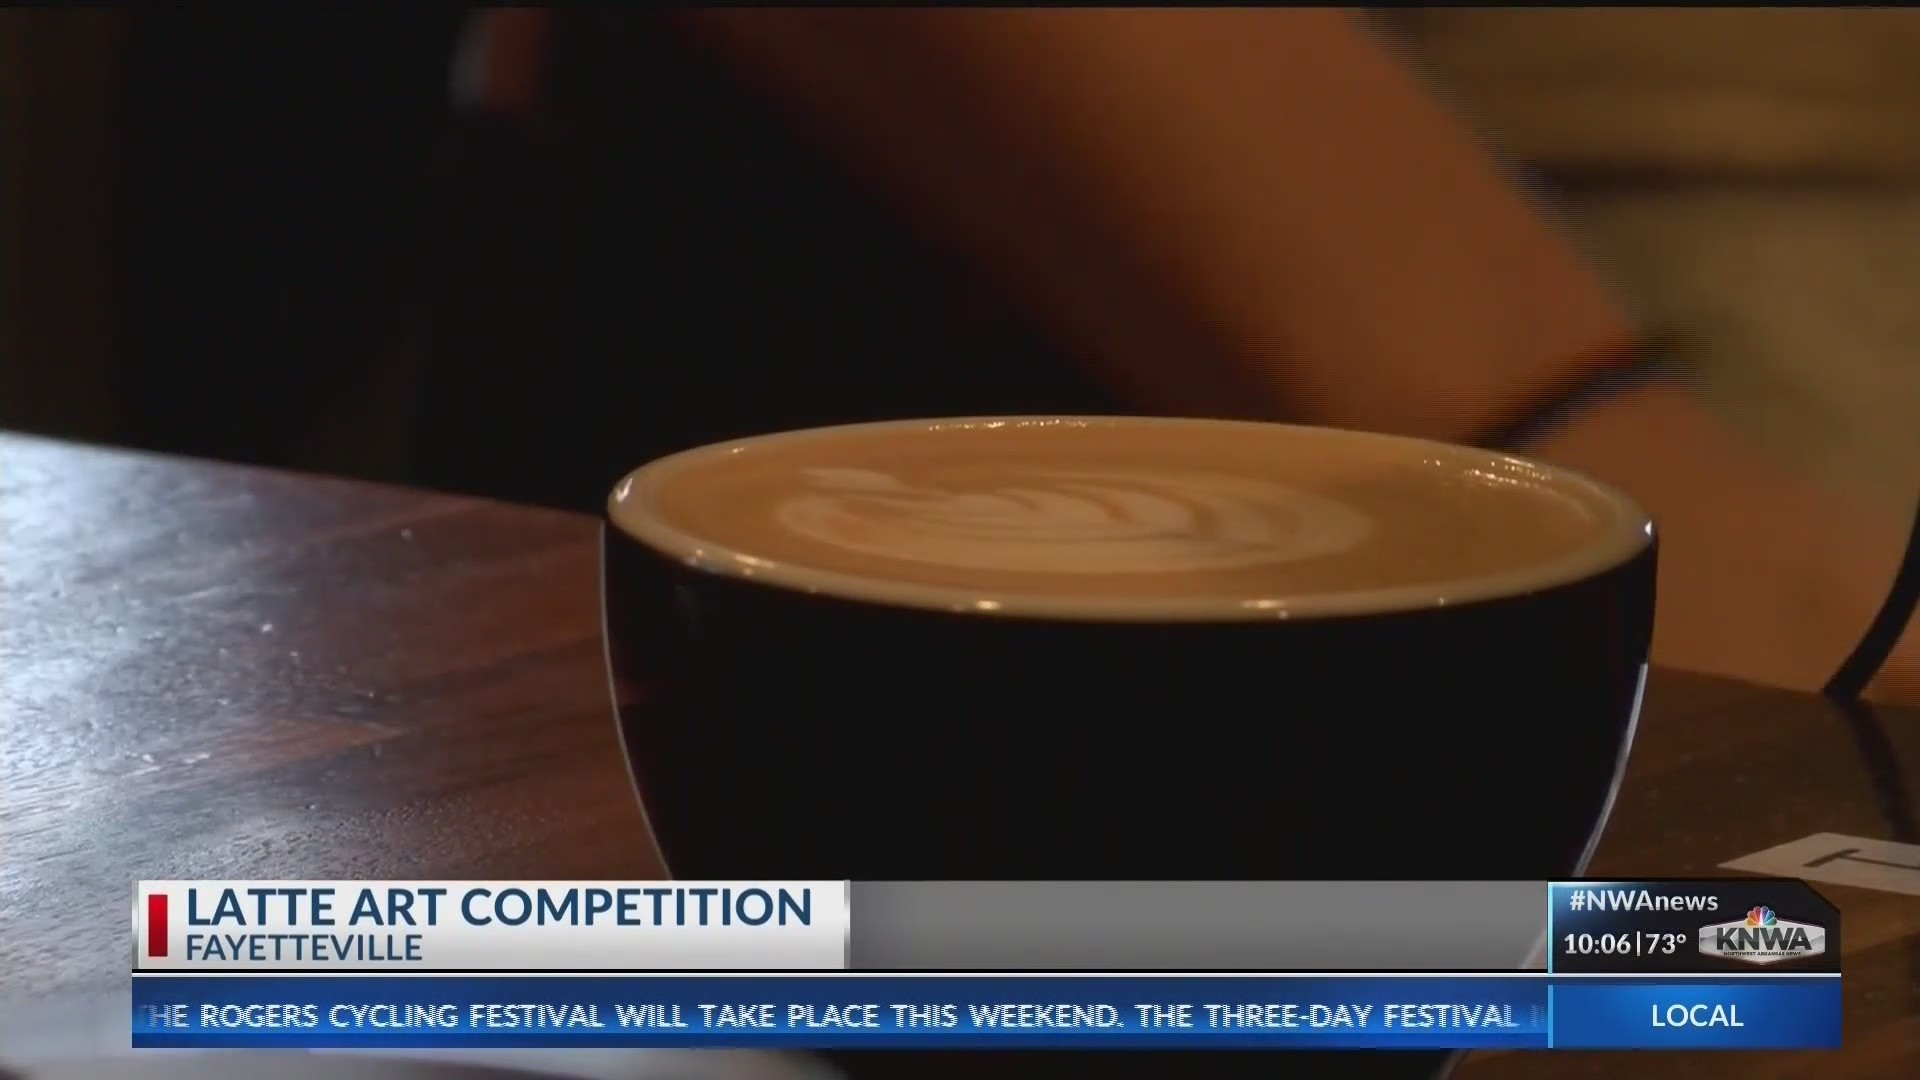 Baristas Compete in Puritan Coffee Latte Art Competition (KNWA)